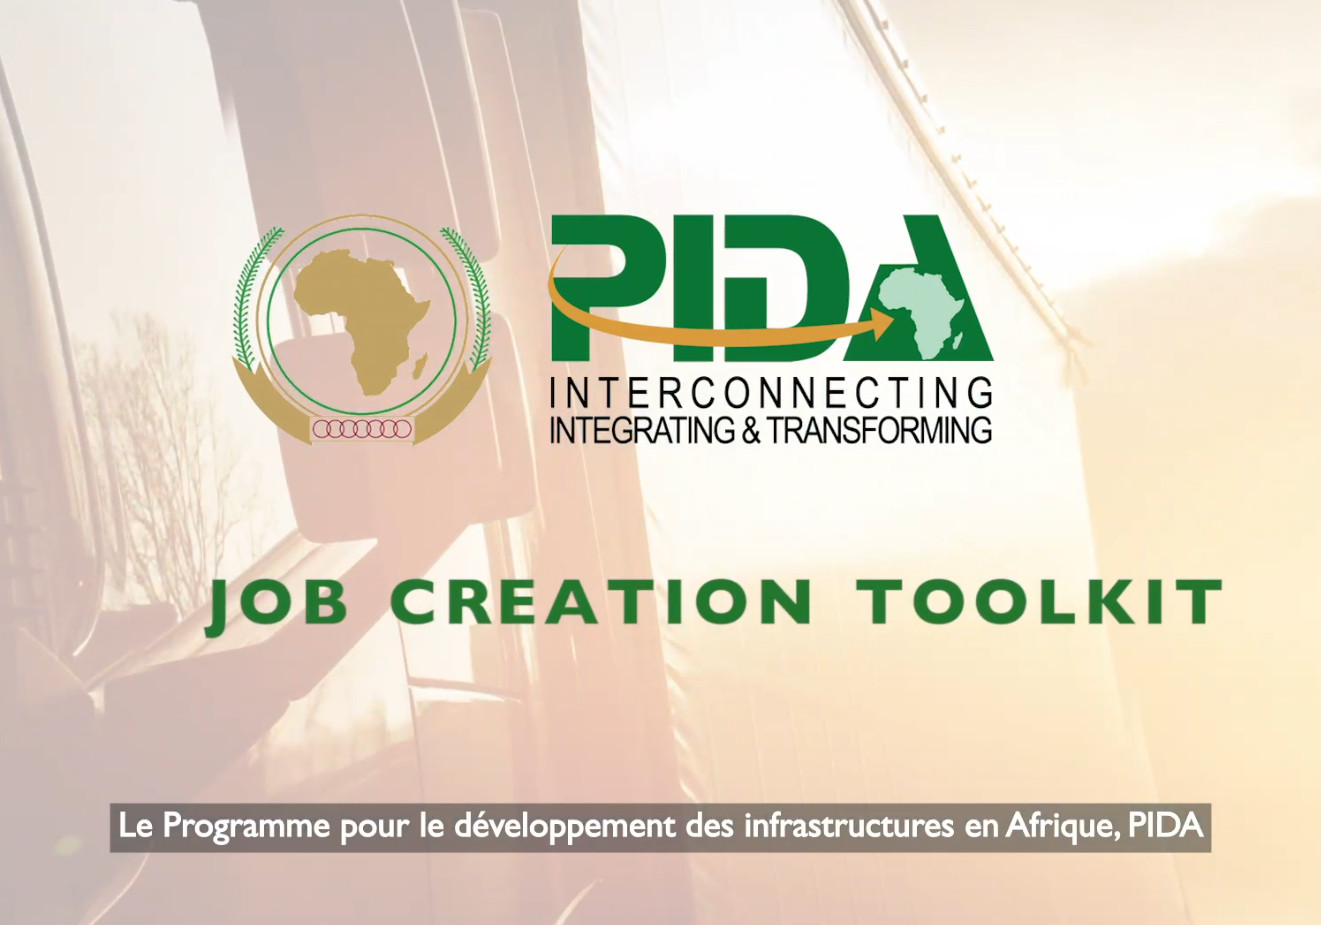 PIDA Job Creation Toolkit